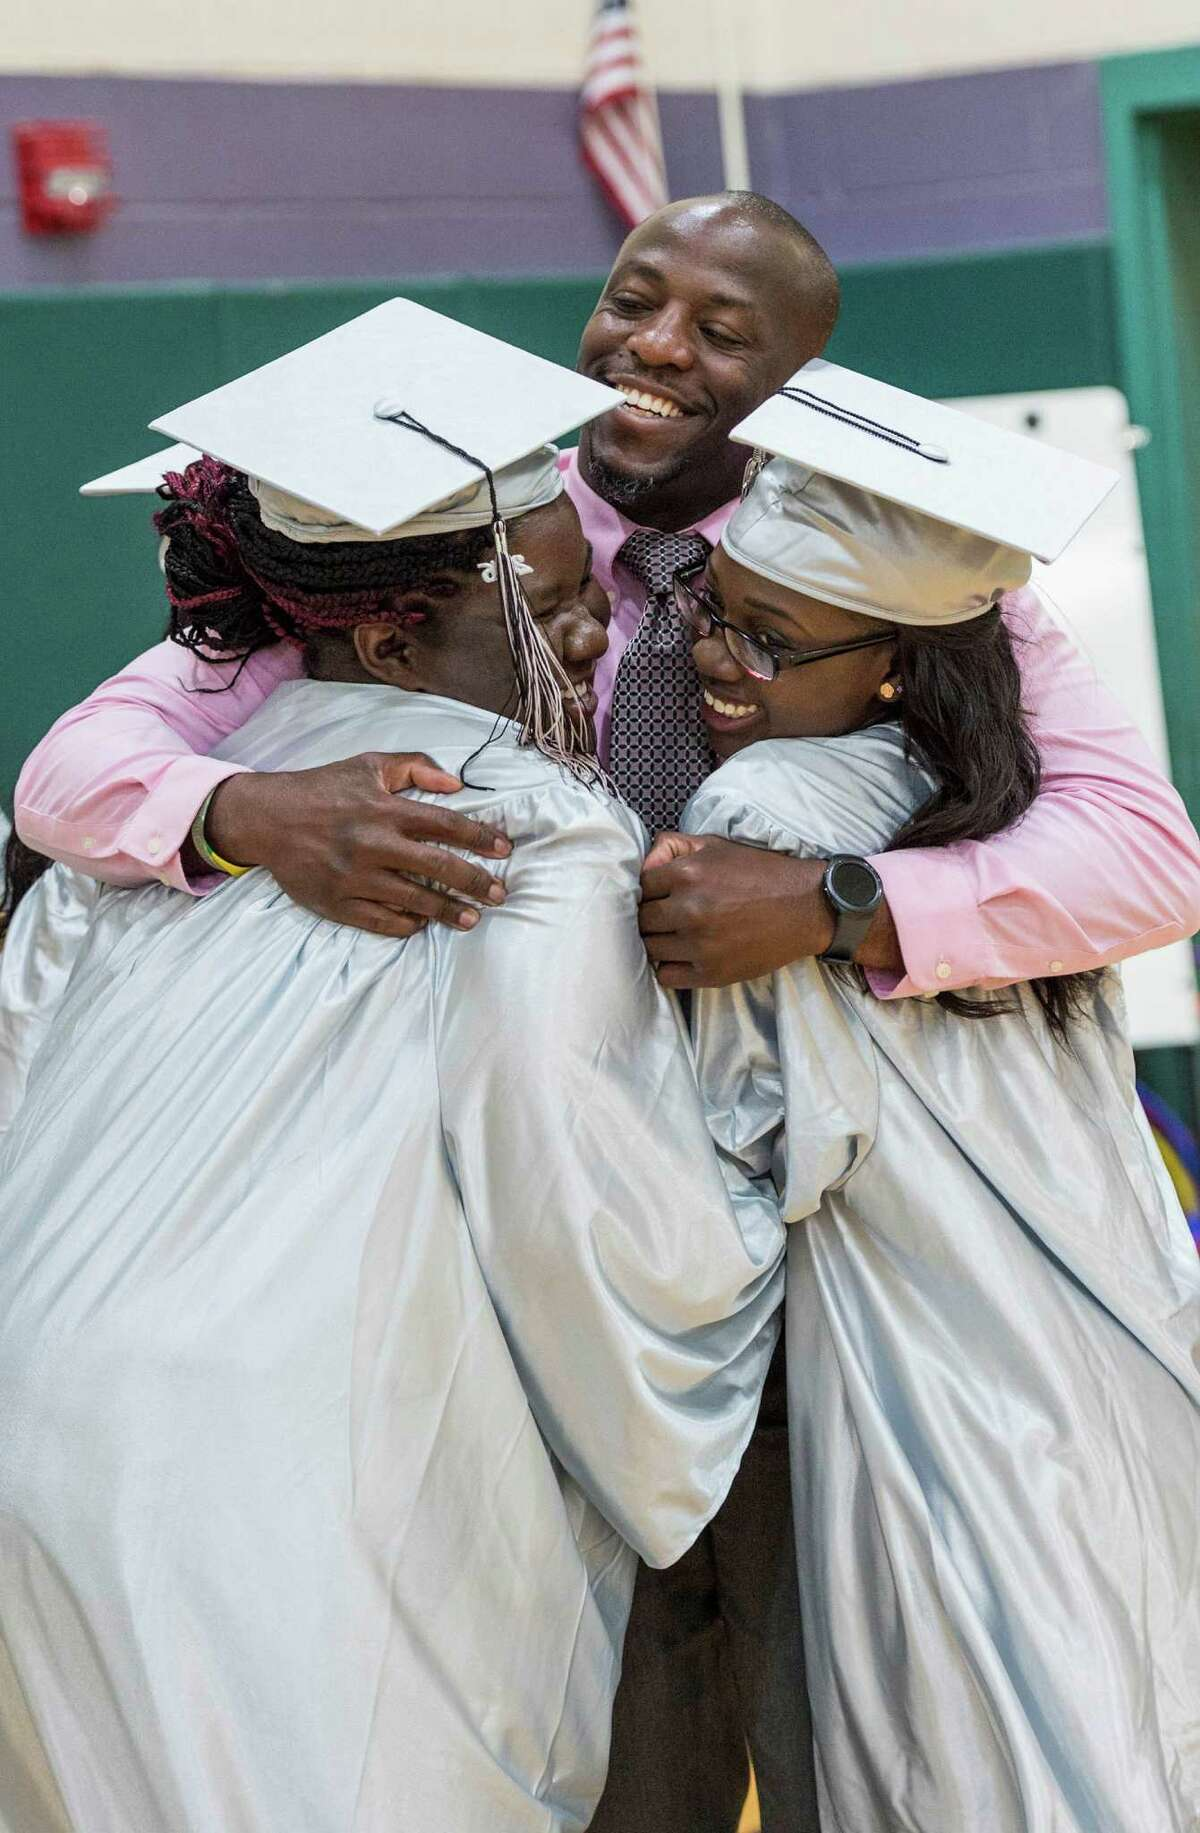 Former Bridge Academy teacher Migel Pickering greets a couple of his old students Kimone Heywood and Brittney Williams at the Bridge Academy Nineteenth Annual Graduation held at the Thurgood Marshall Middle School, Bridgeport, CT on Tuesday, June 14, 2016.